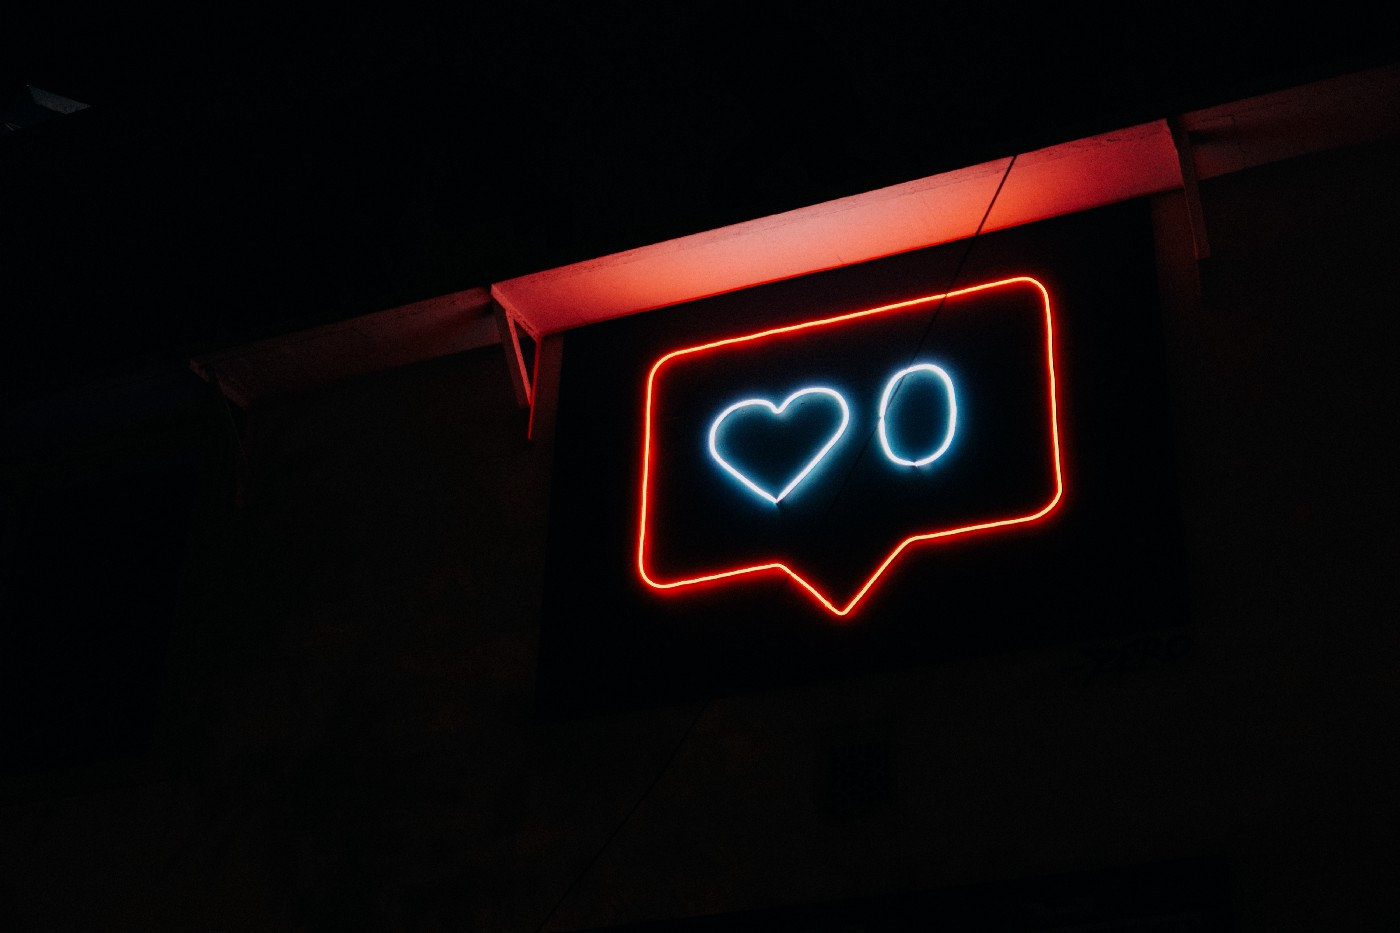 Neon sign of a heart button.